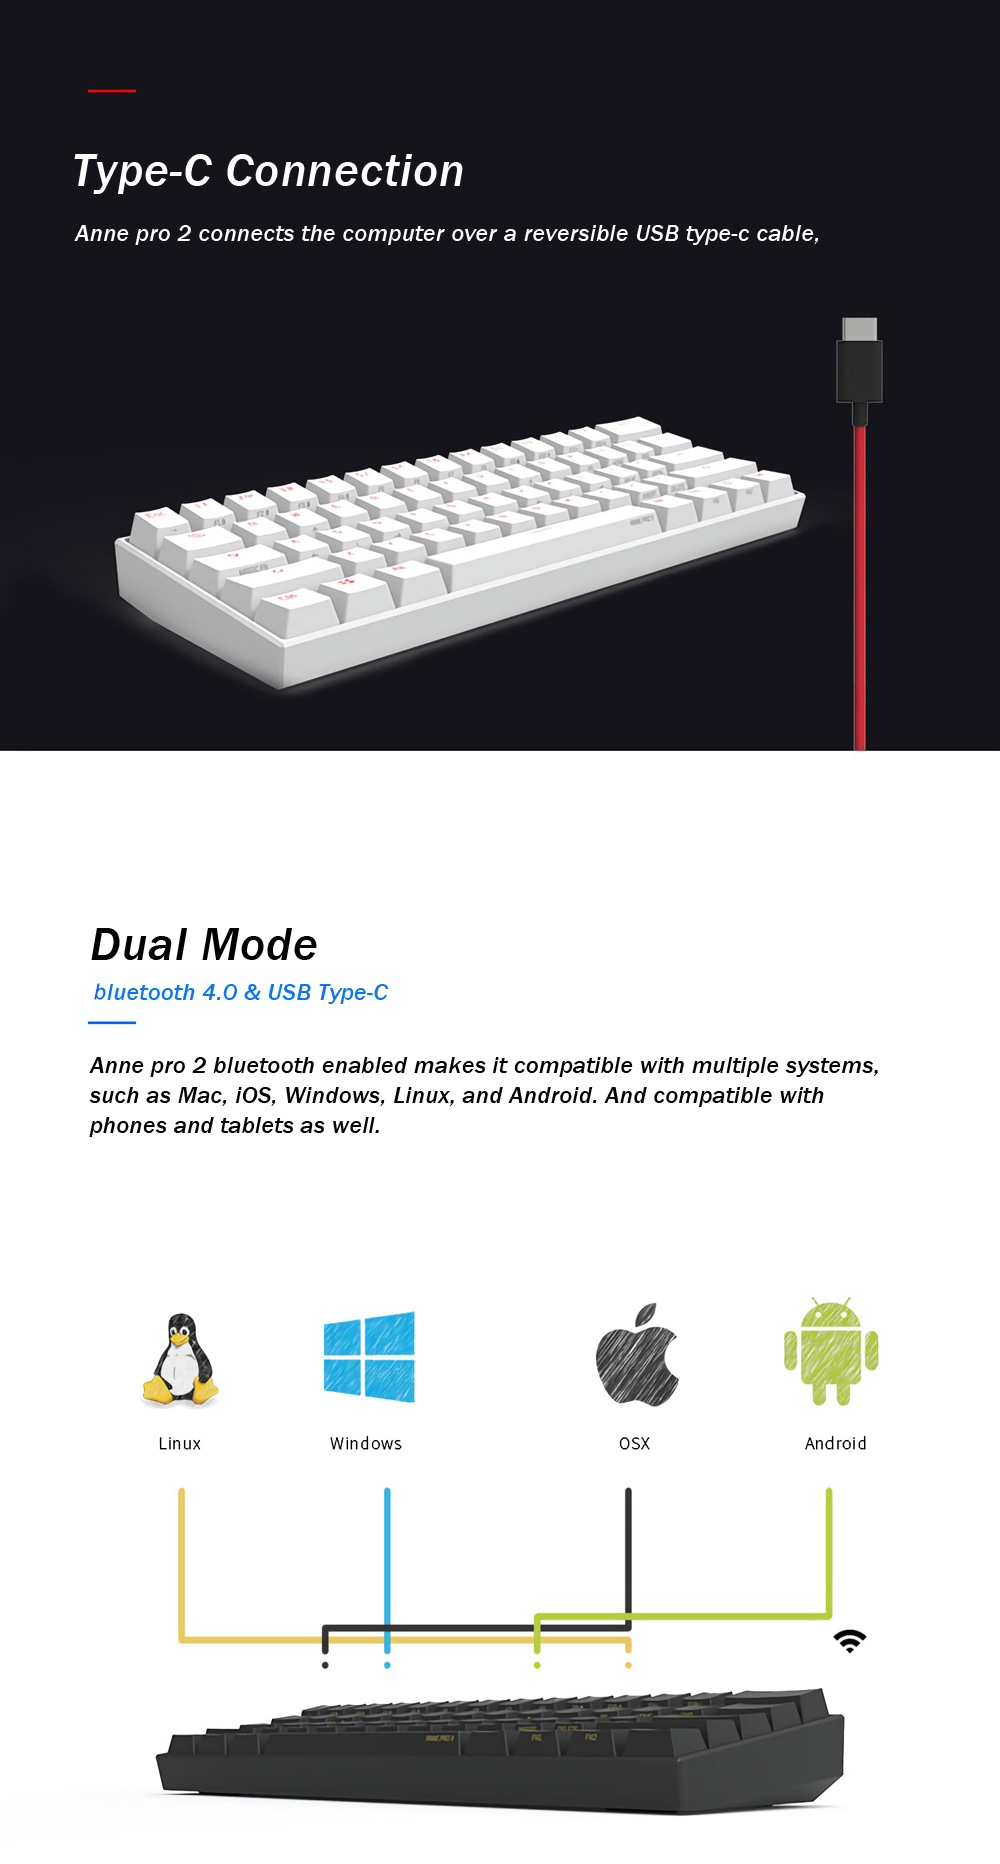 [Kailh BOX Switch]Obins Anne Pro 2 60% NKRO bluetooth 4.0 Type-C RGB Mechanical Gaming Keyboard 14